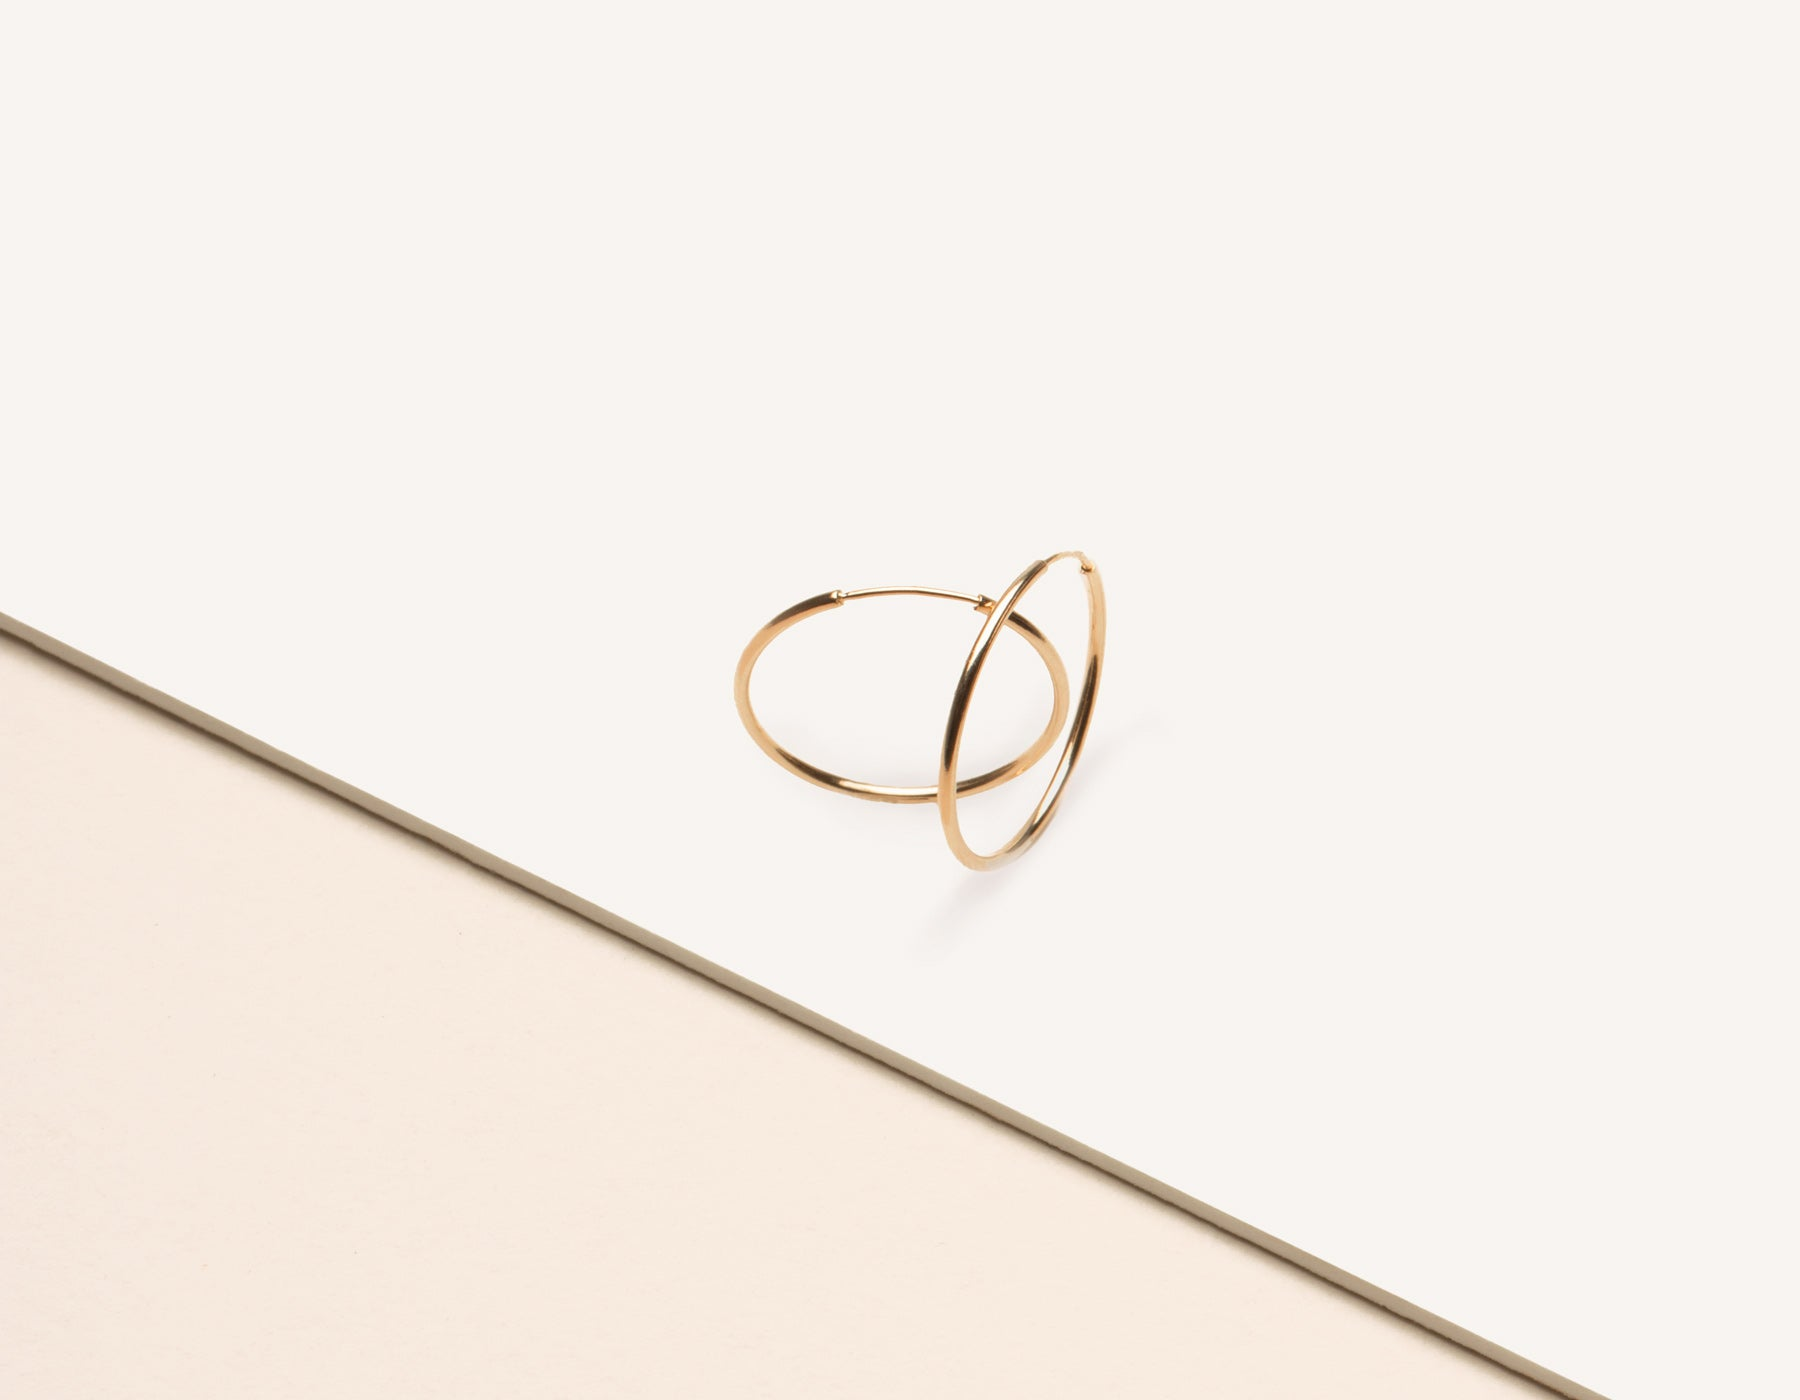 modern minimalist Medium Lightweight Hoop earrings 14k solid gold Vrai & Oro sustainable jewelry, 14K Rose Gold